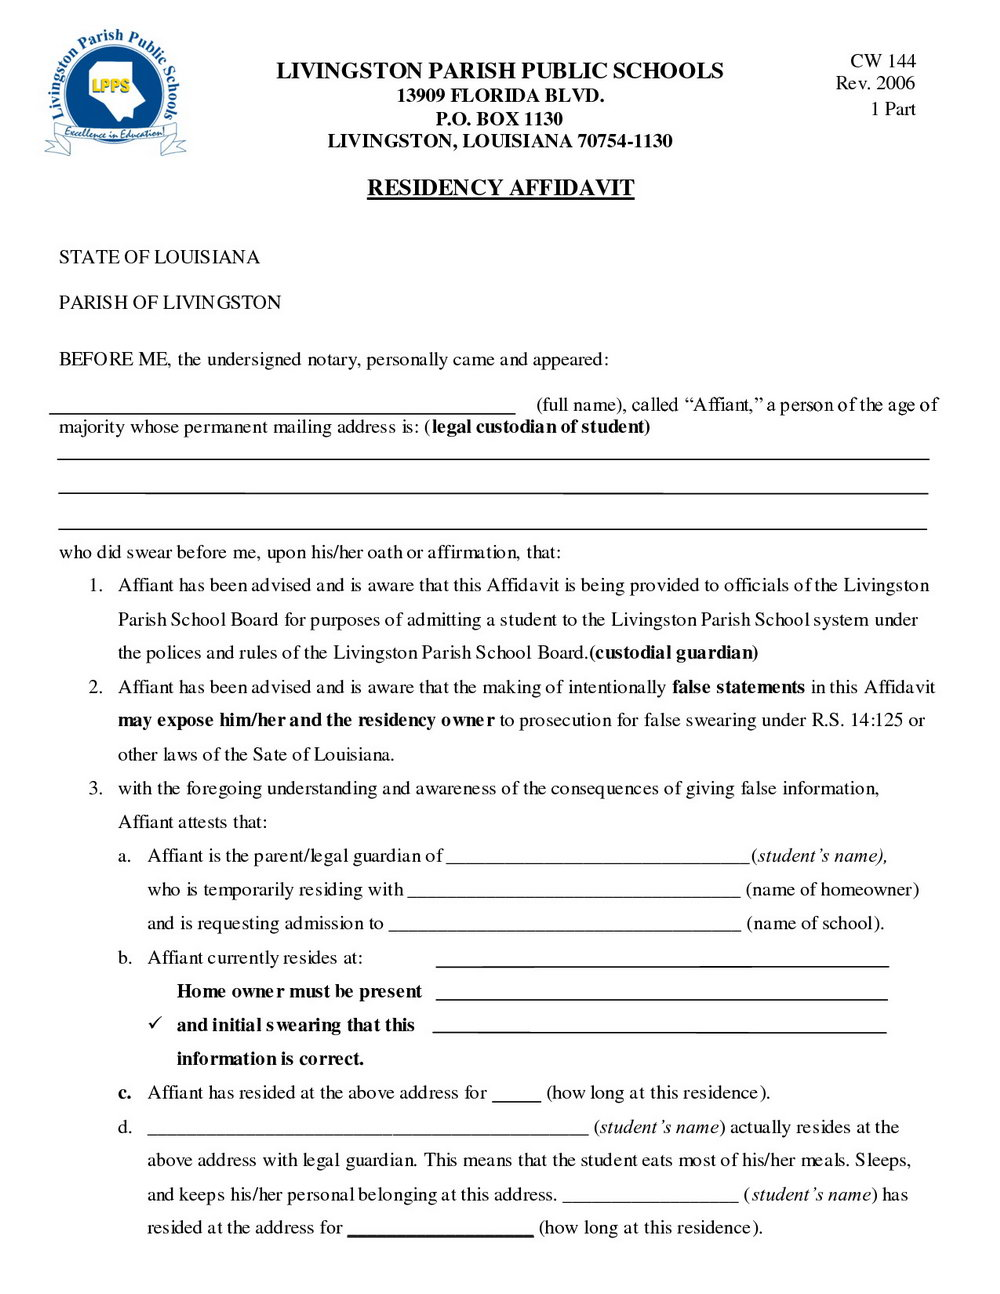 Temporary Guardianship Forms Missouri